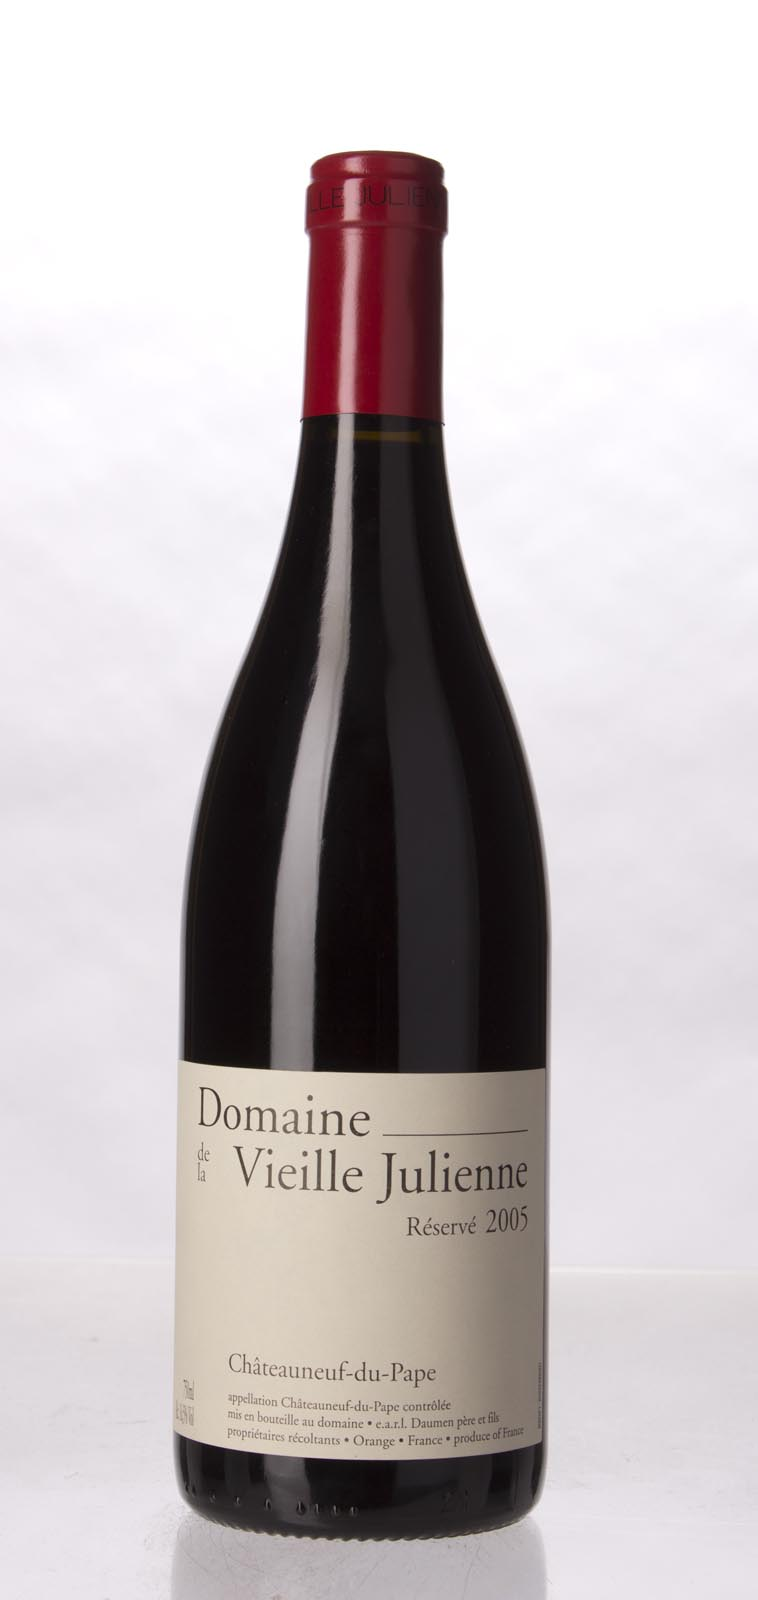 Domaine de la Vieille Julienne Chateauneuf du Pape Cuvee Reservee 2005, 750mL (WA100) from The BPW - Merchants of rare and fine wines.